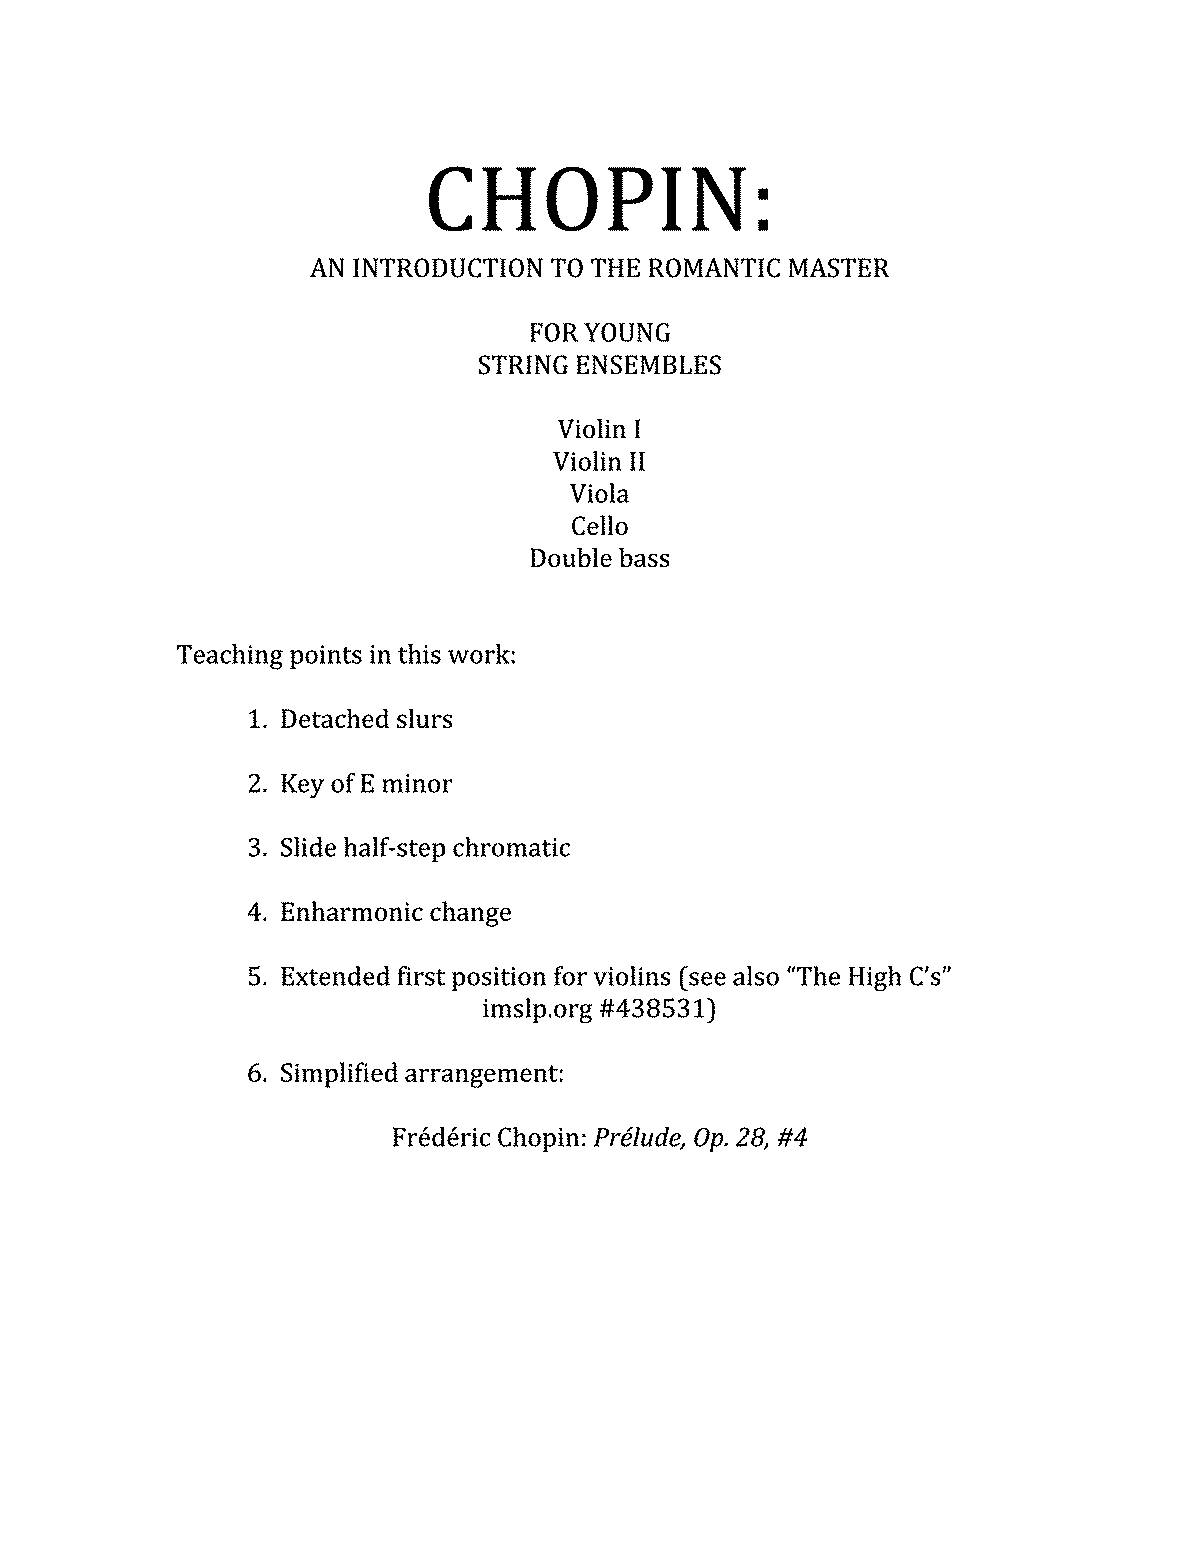 PMLP714197-Chopin-An Introduction.pdf